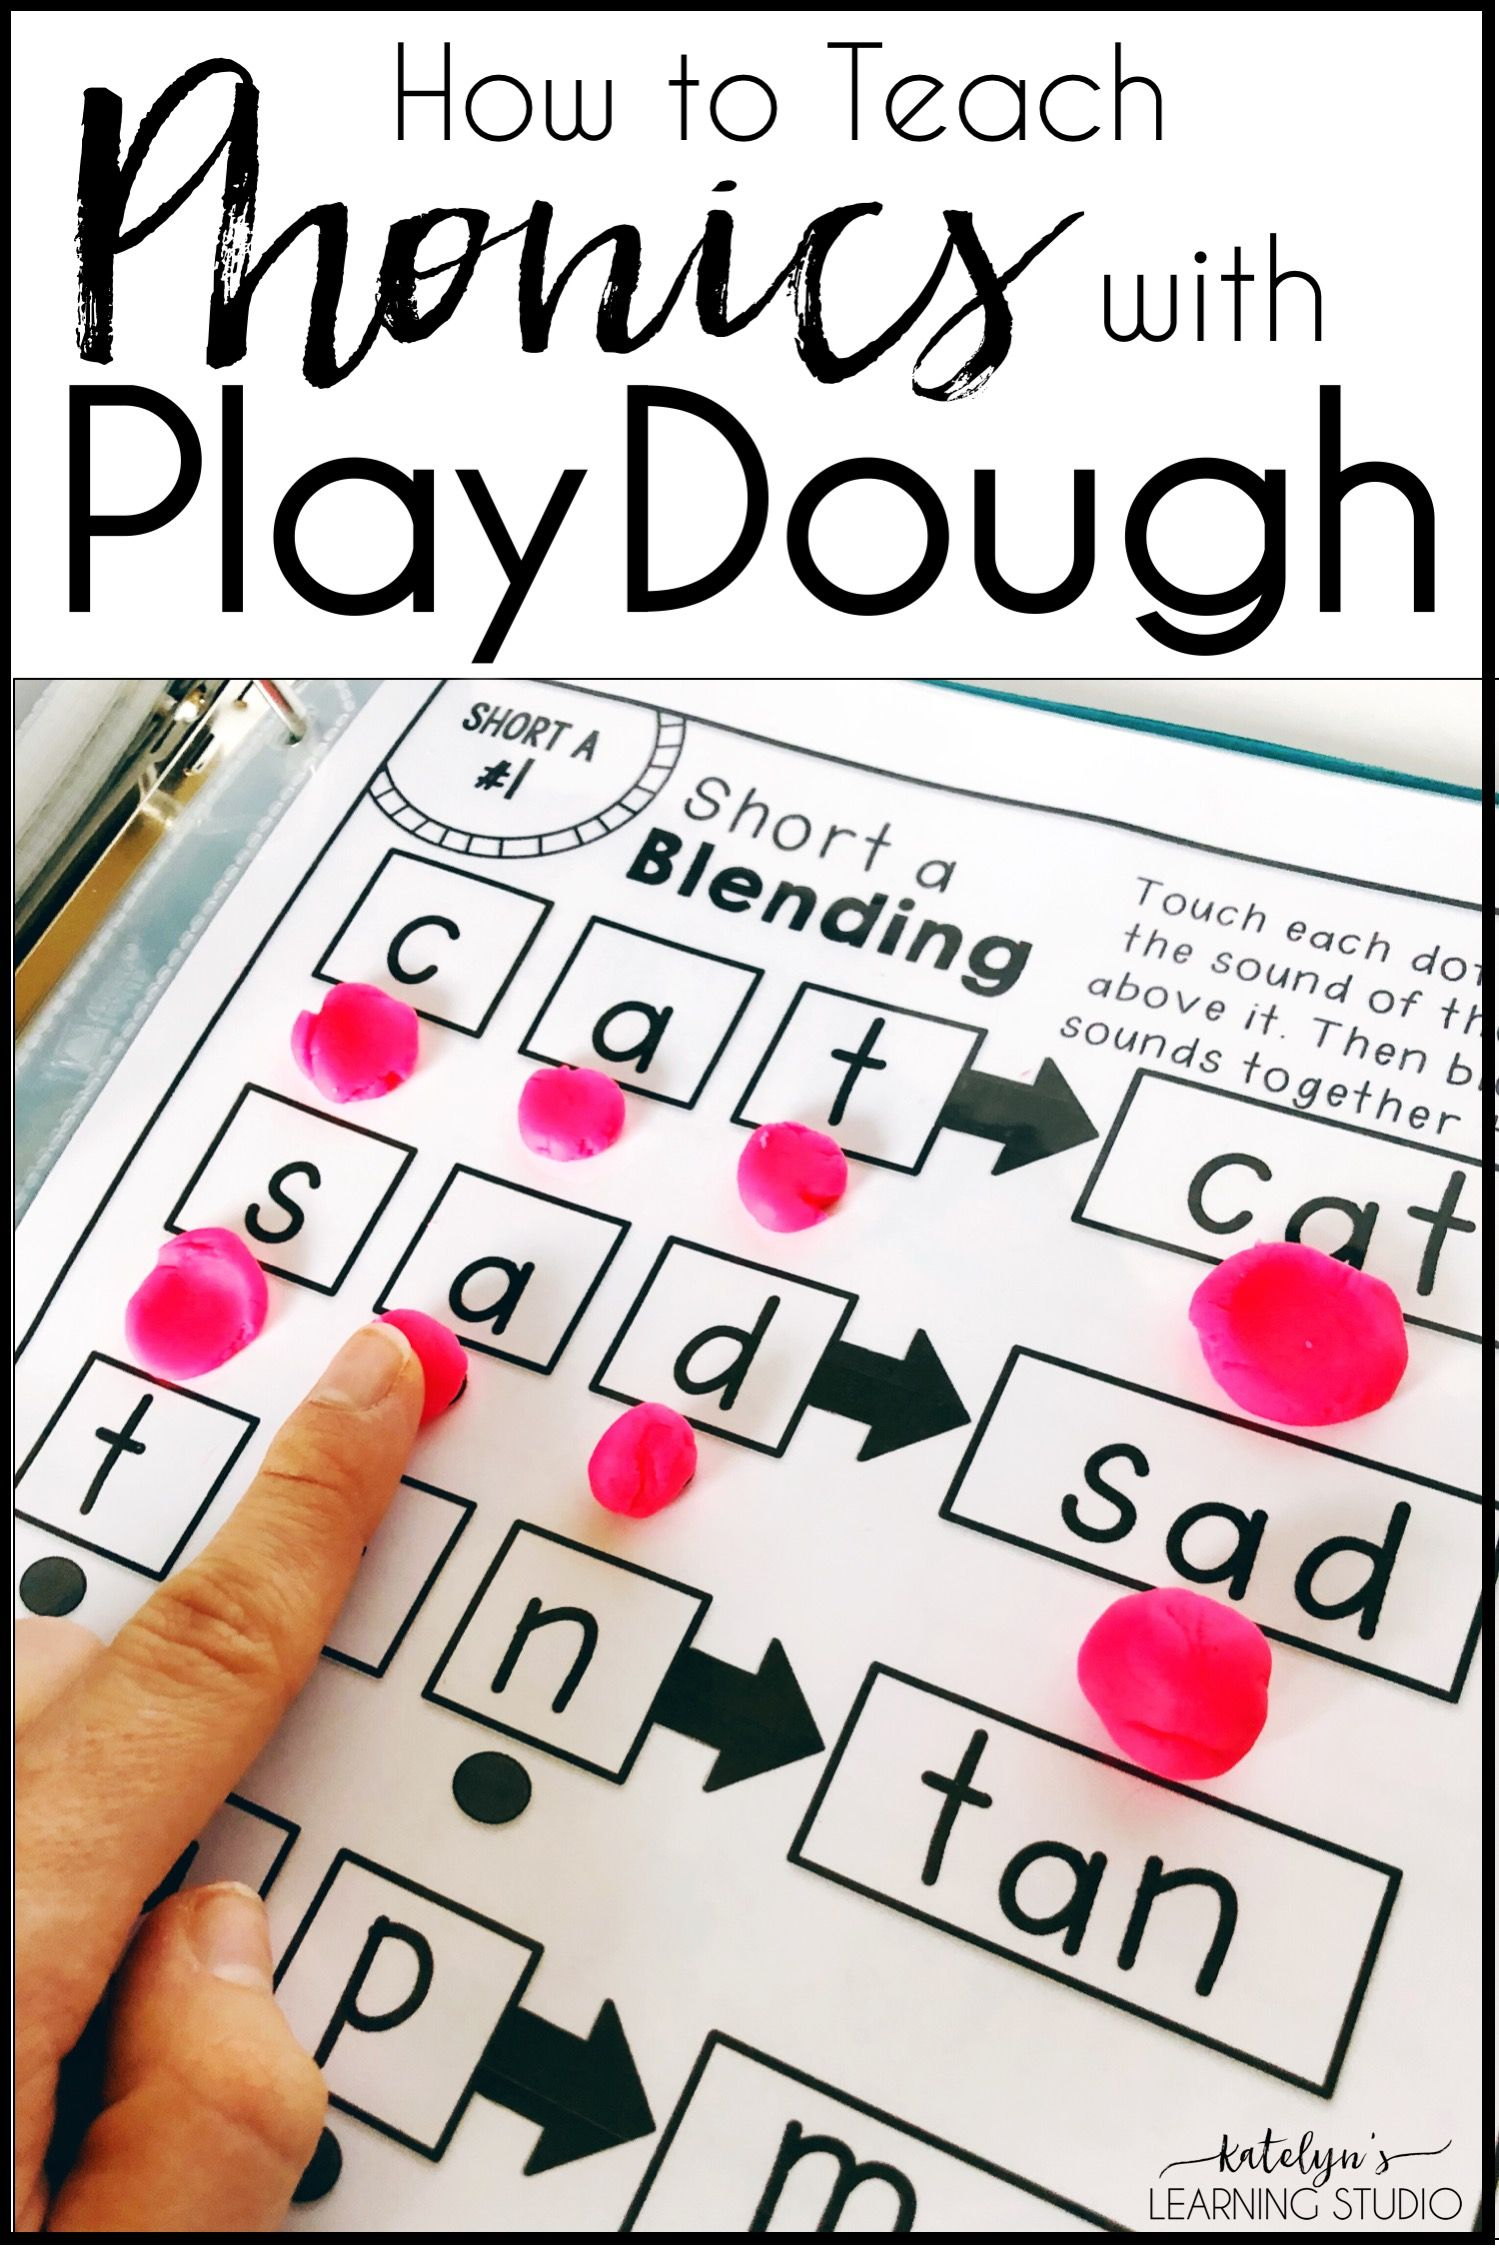 Use Playdough to Teach Phonics | Blog- Katelyn's Learning Studio